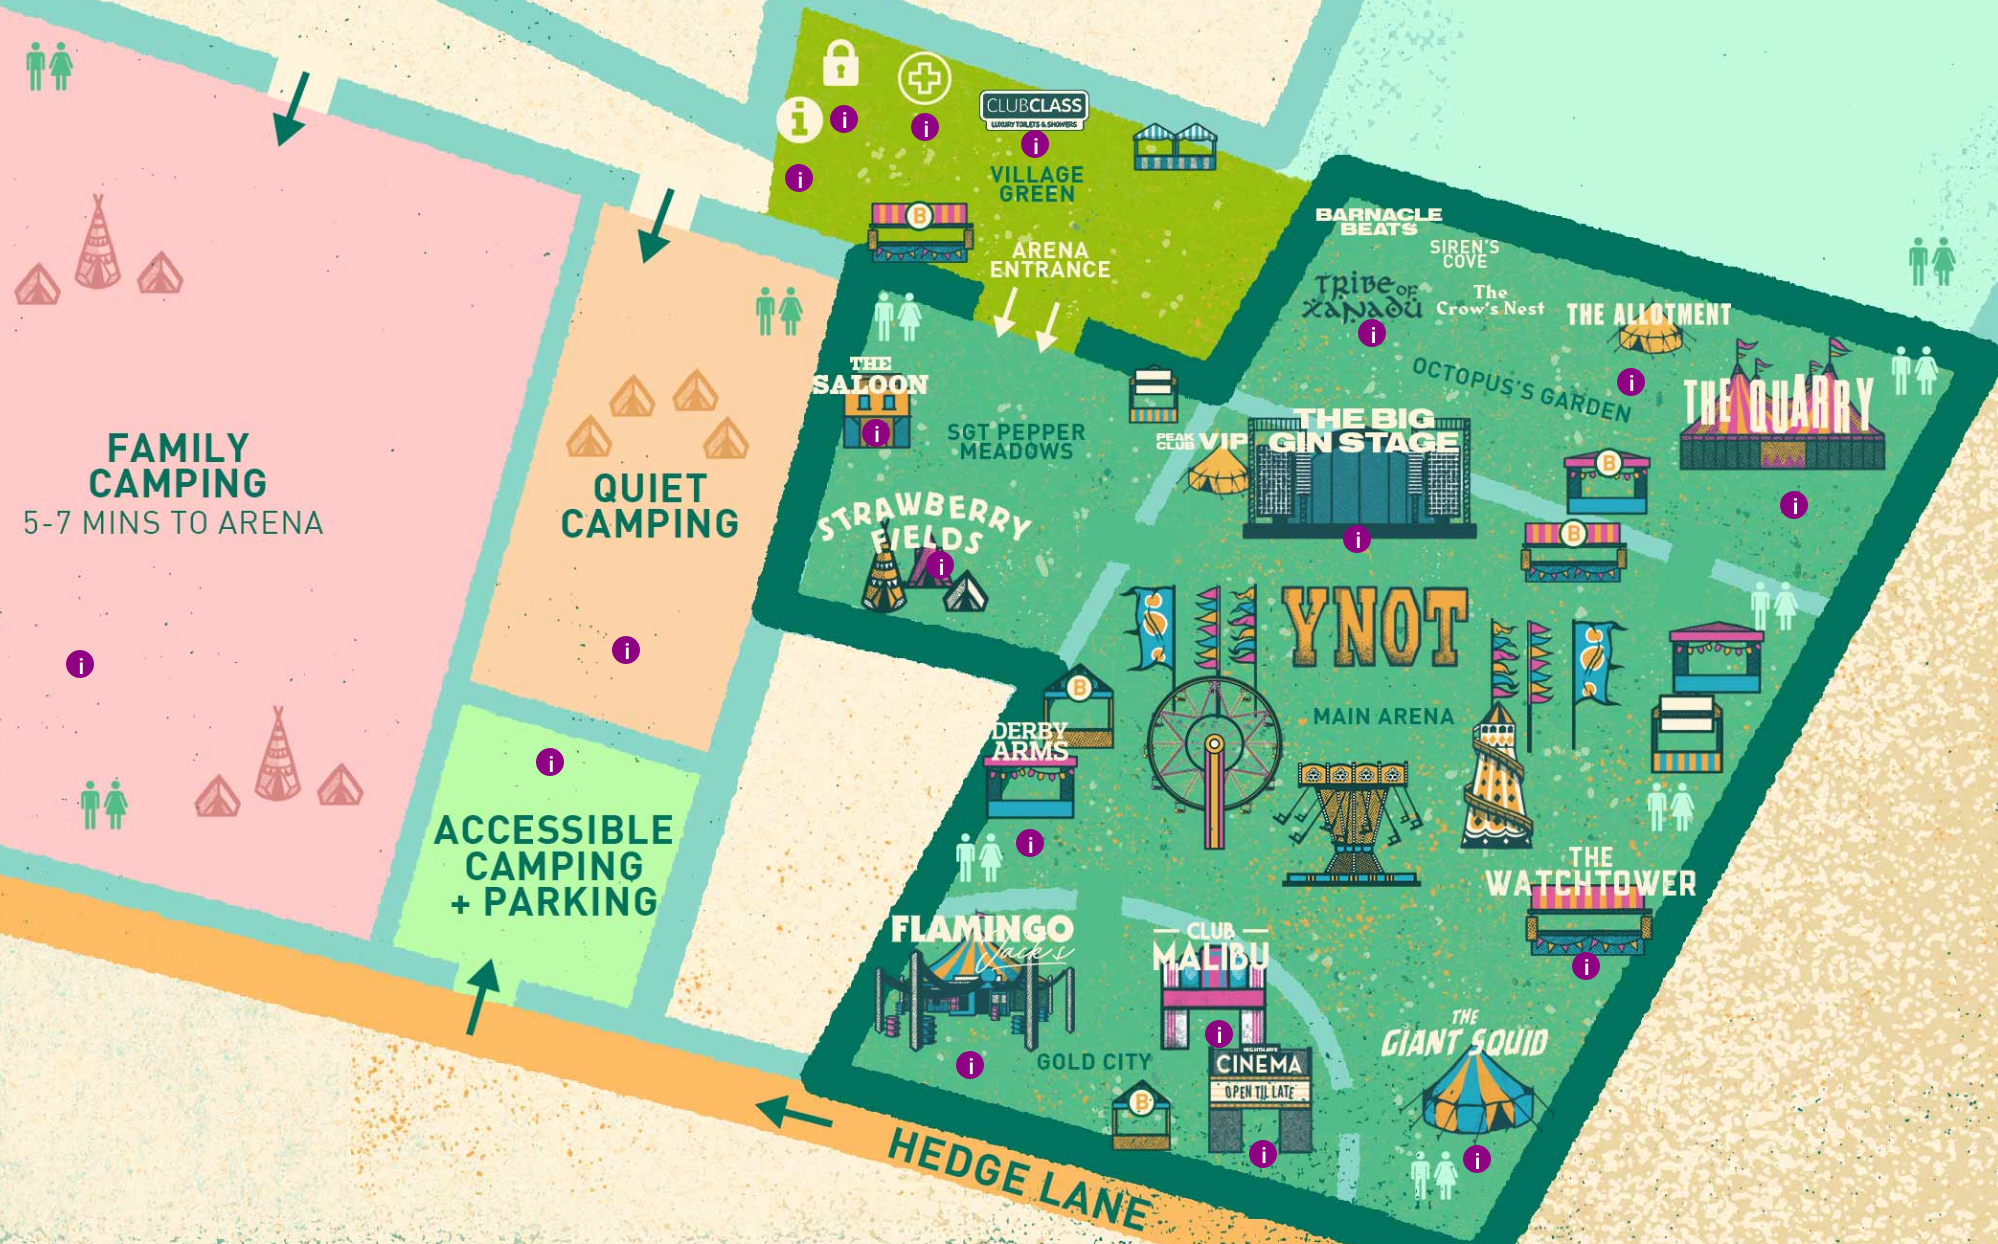 Explore The New Festival Site - Y Not Festival 2018